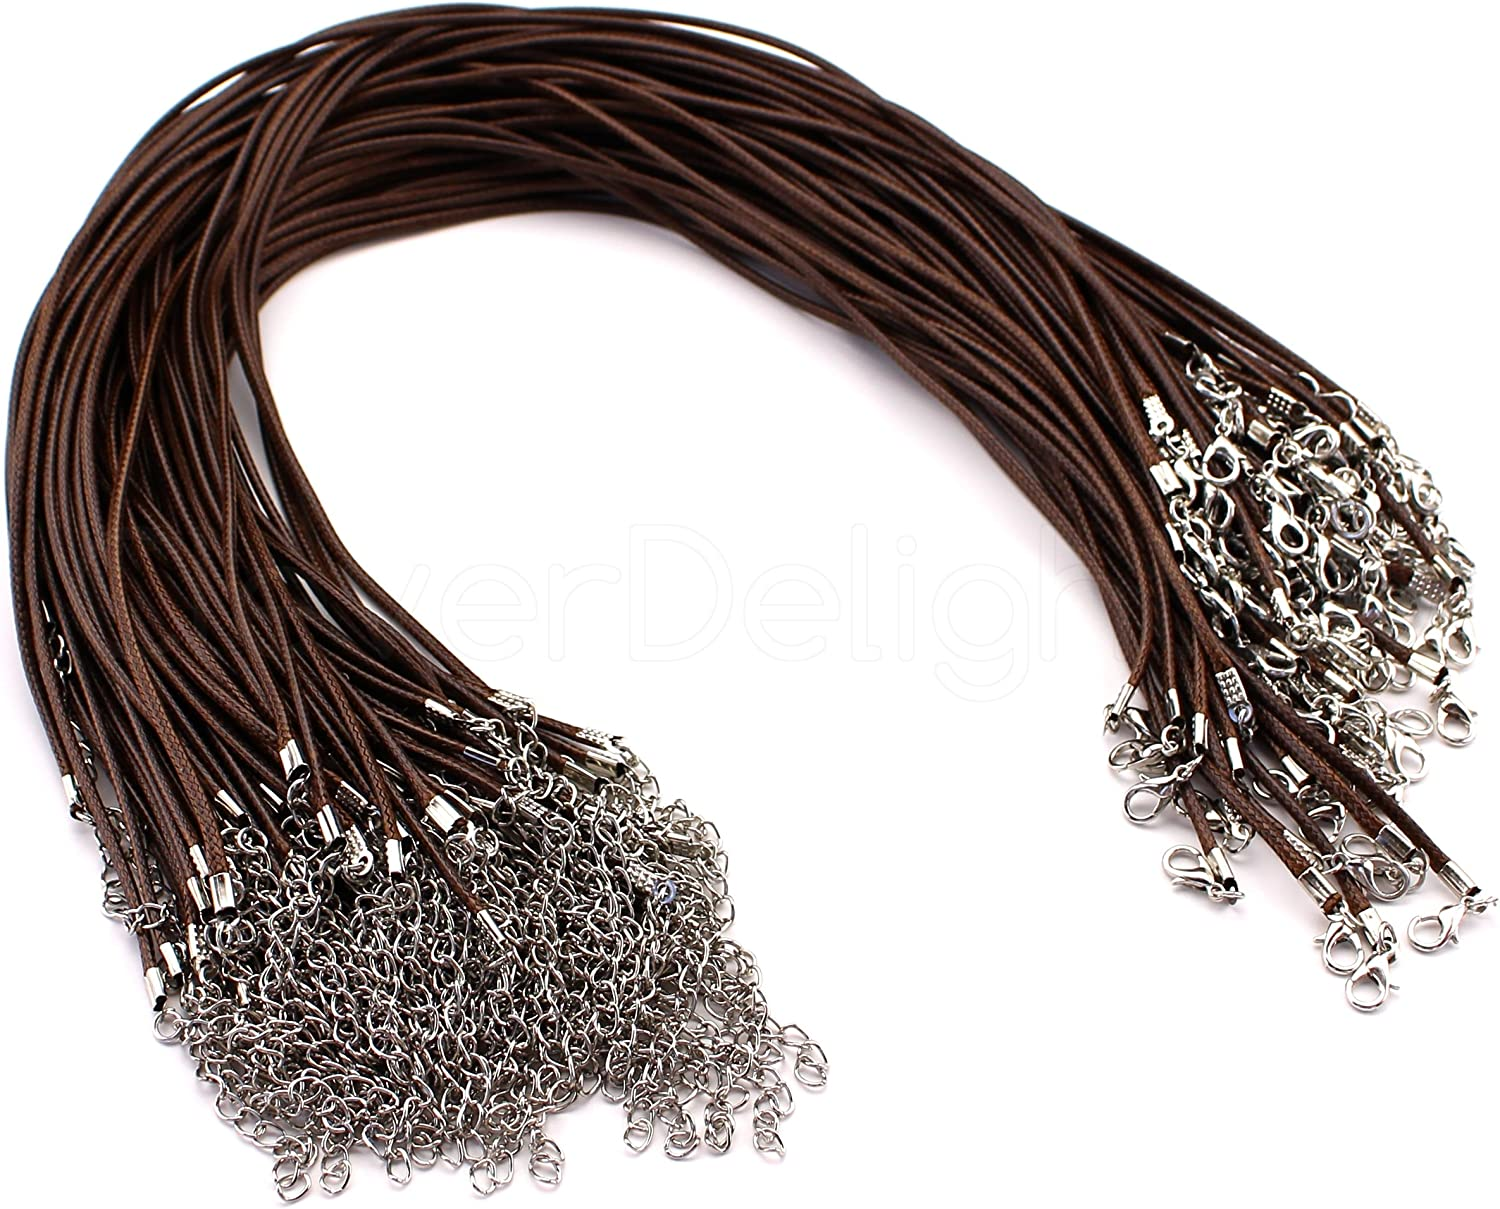 100 CleverDelights Imitation Leather Cord Necklaces  Brown  18 Inch  With Lobster Clasp 2mm Thick 18